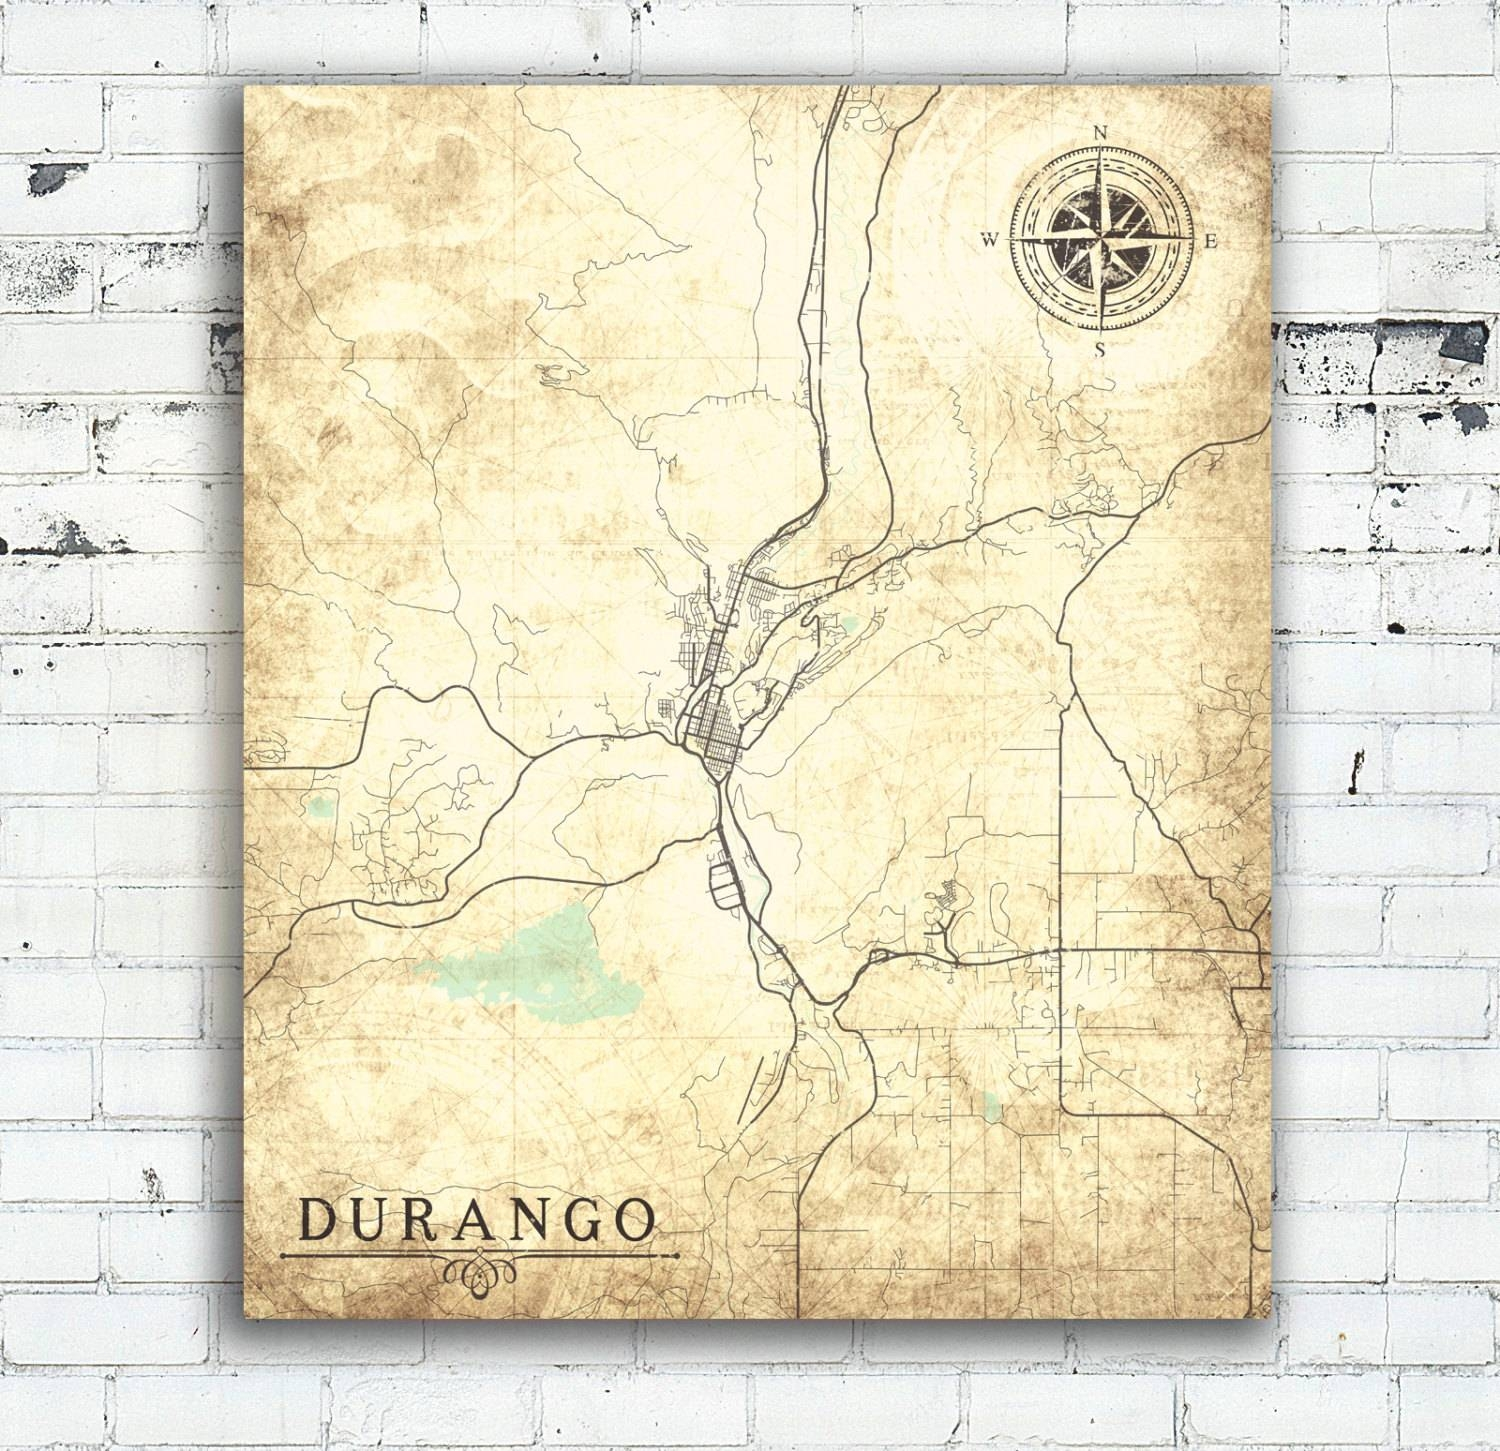 Durango Co Colorado Vintage Map Durango Vintage City Wall Art Intended For Most Current City Prints Map Wall Art (View 12 of 20)